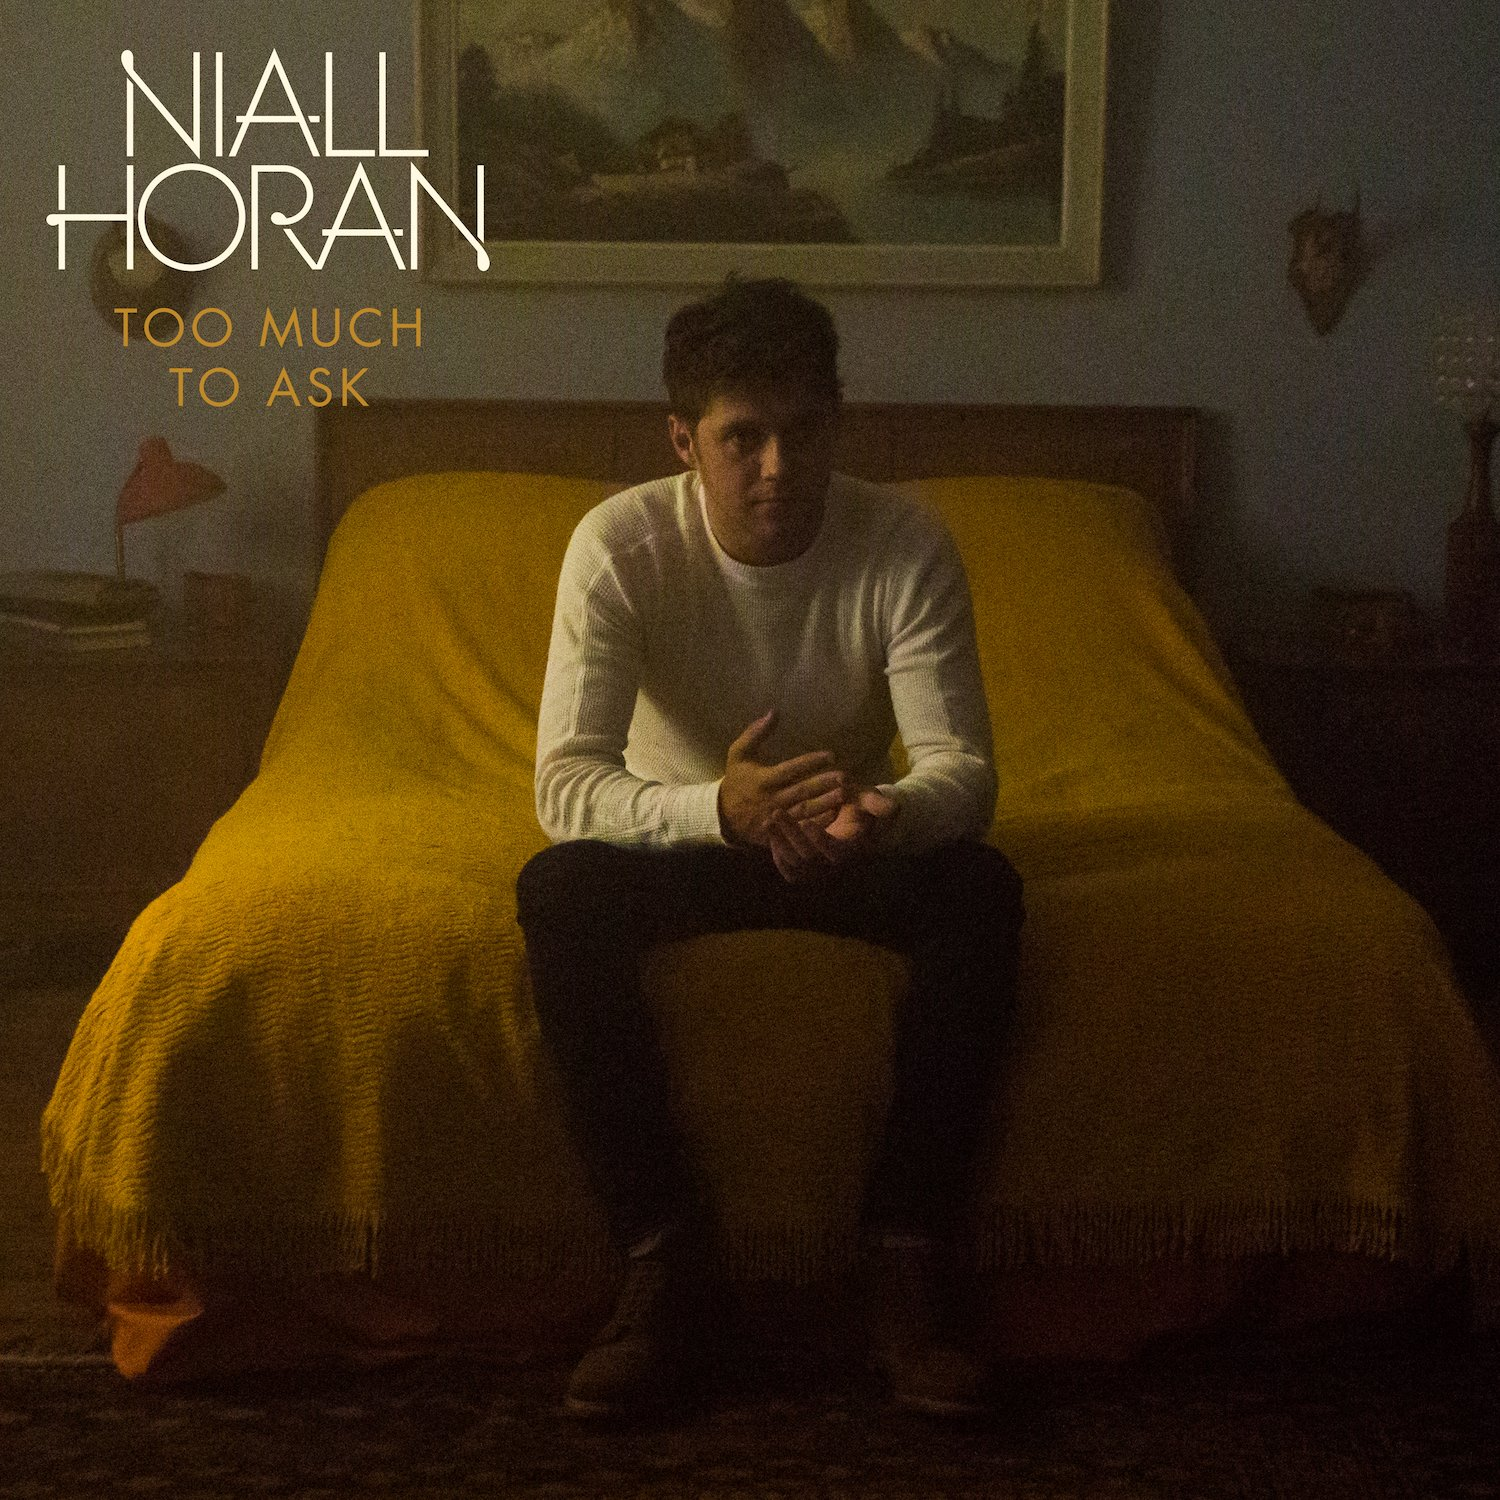 .@NiallOfficial's new single #TooMuchToAsk is out now! ���� Get ready for all the feels here: https://t.co/QZ83GSBiSp https://t.co/YRt3aCS4Pf